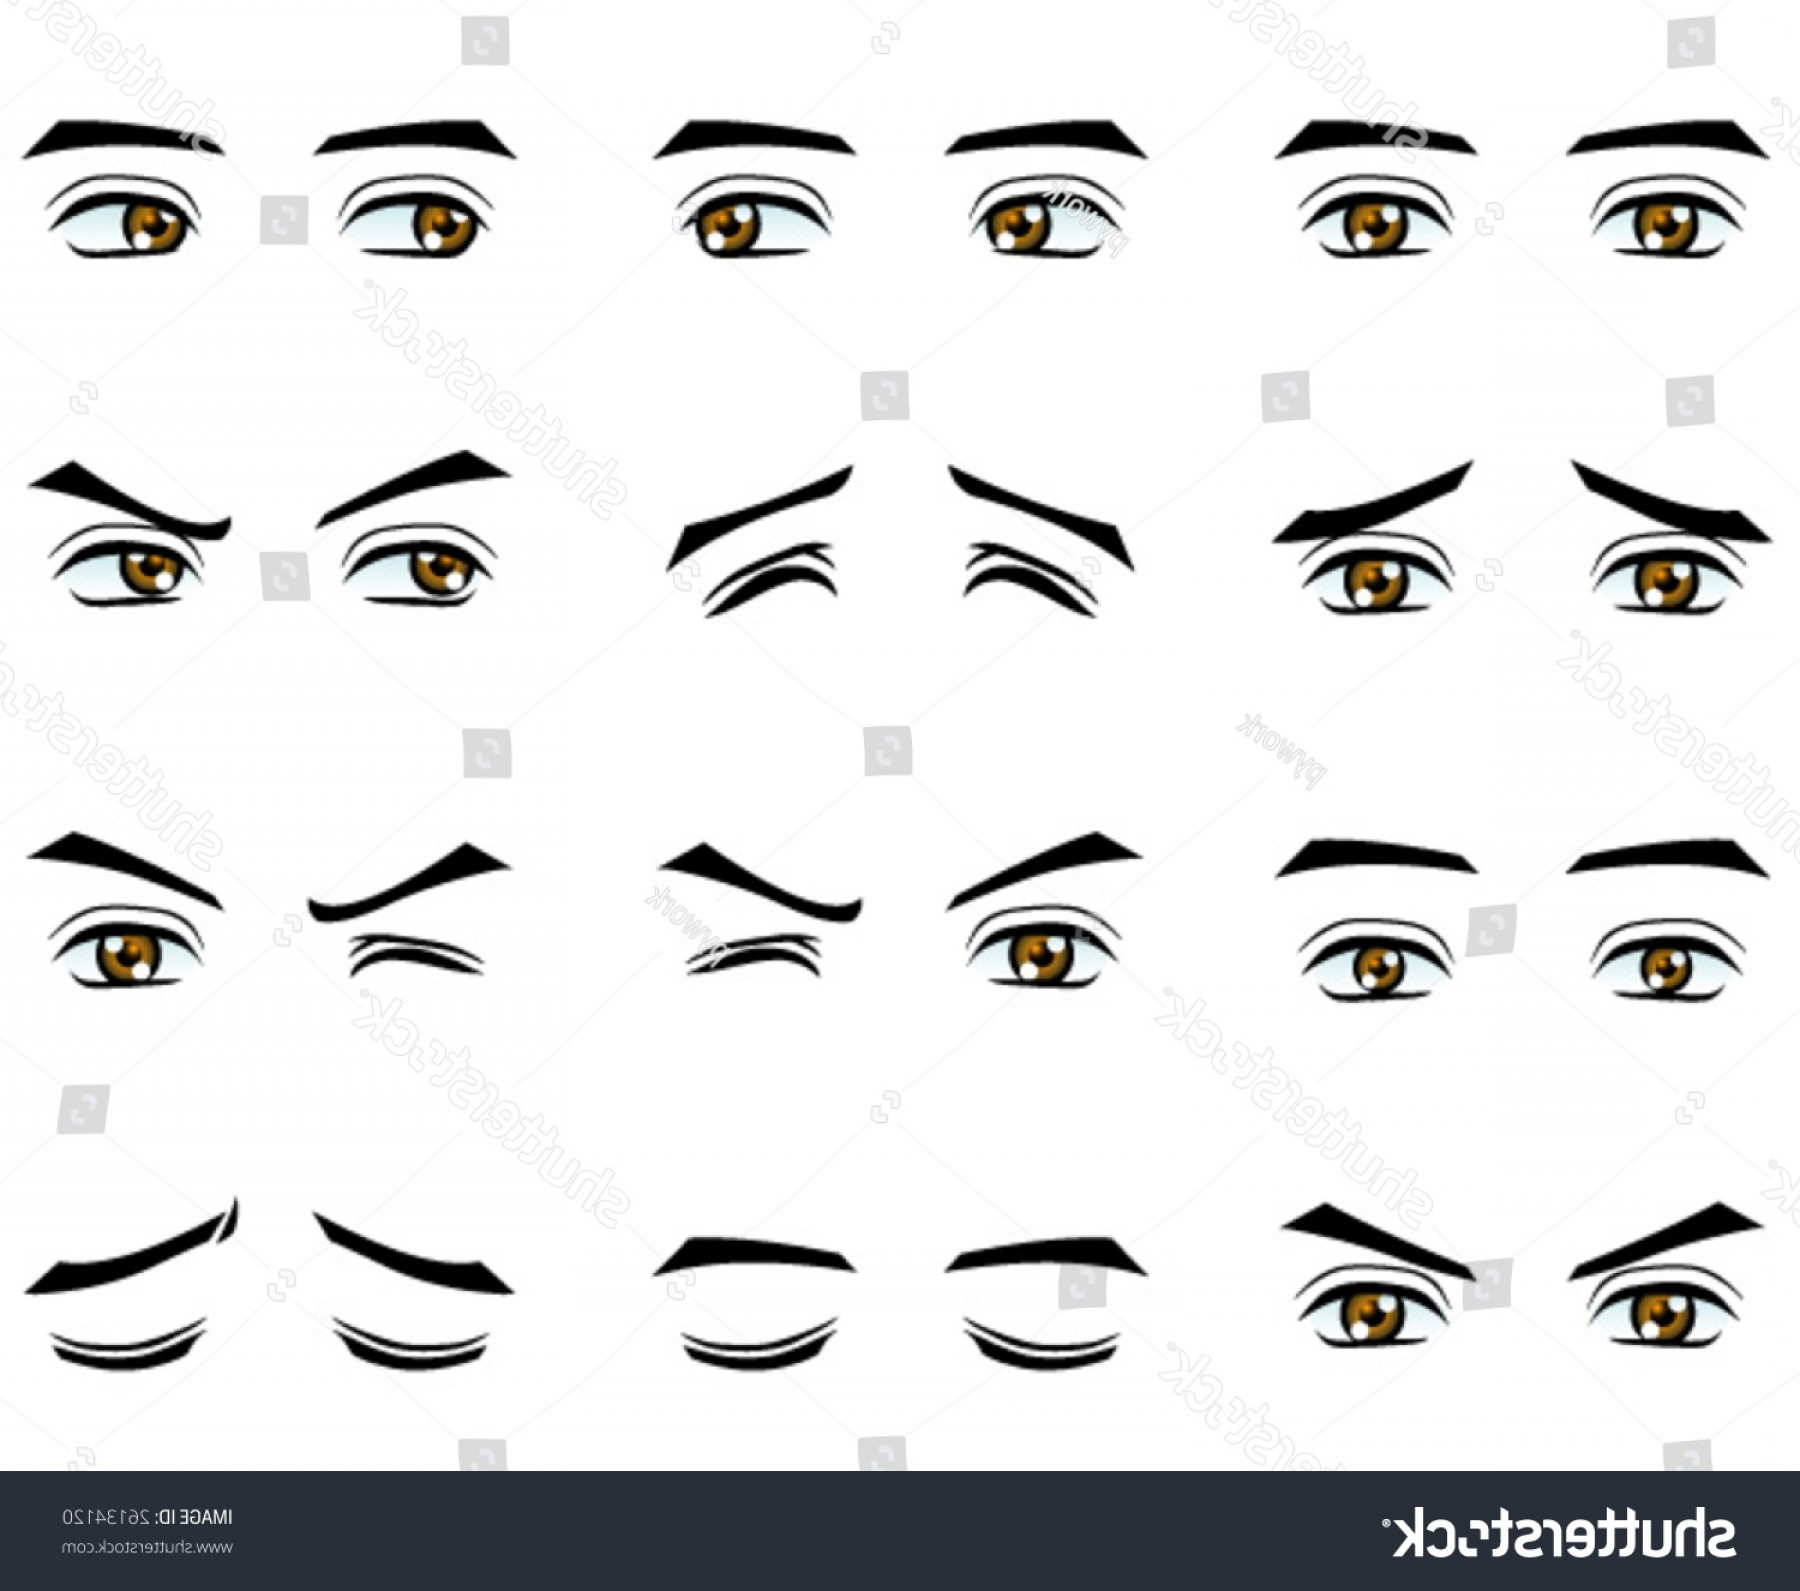 Male Eyes Vector Graphic: Shutterstock Vector Male Eyes In Different Emotion